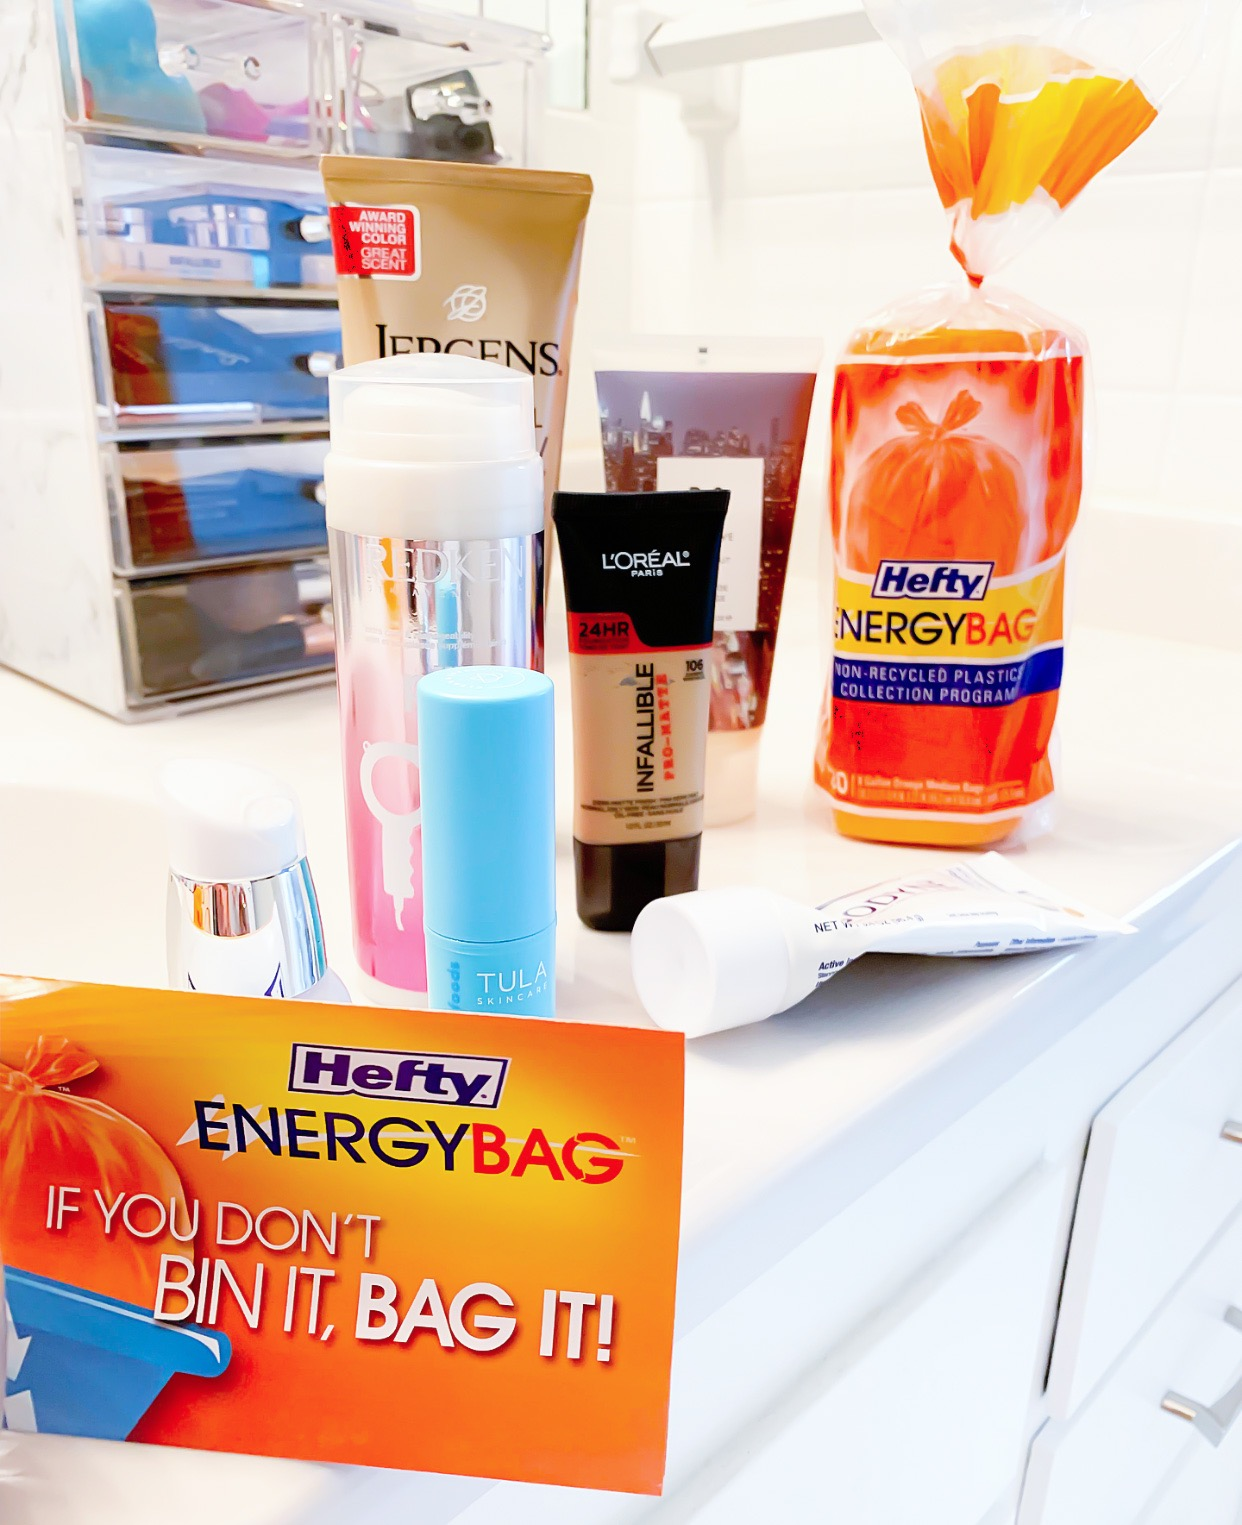 Hefty® EnergyBag® Program-Hefty Orange Bags-Recycling-Omaha-Nebraska-Sabby Style-Spring Cleaning-9